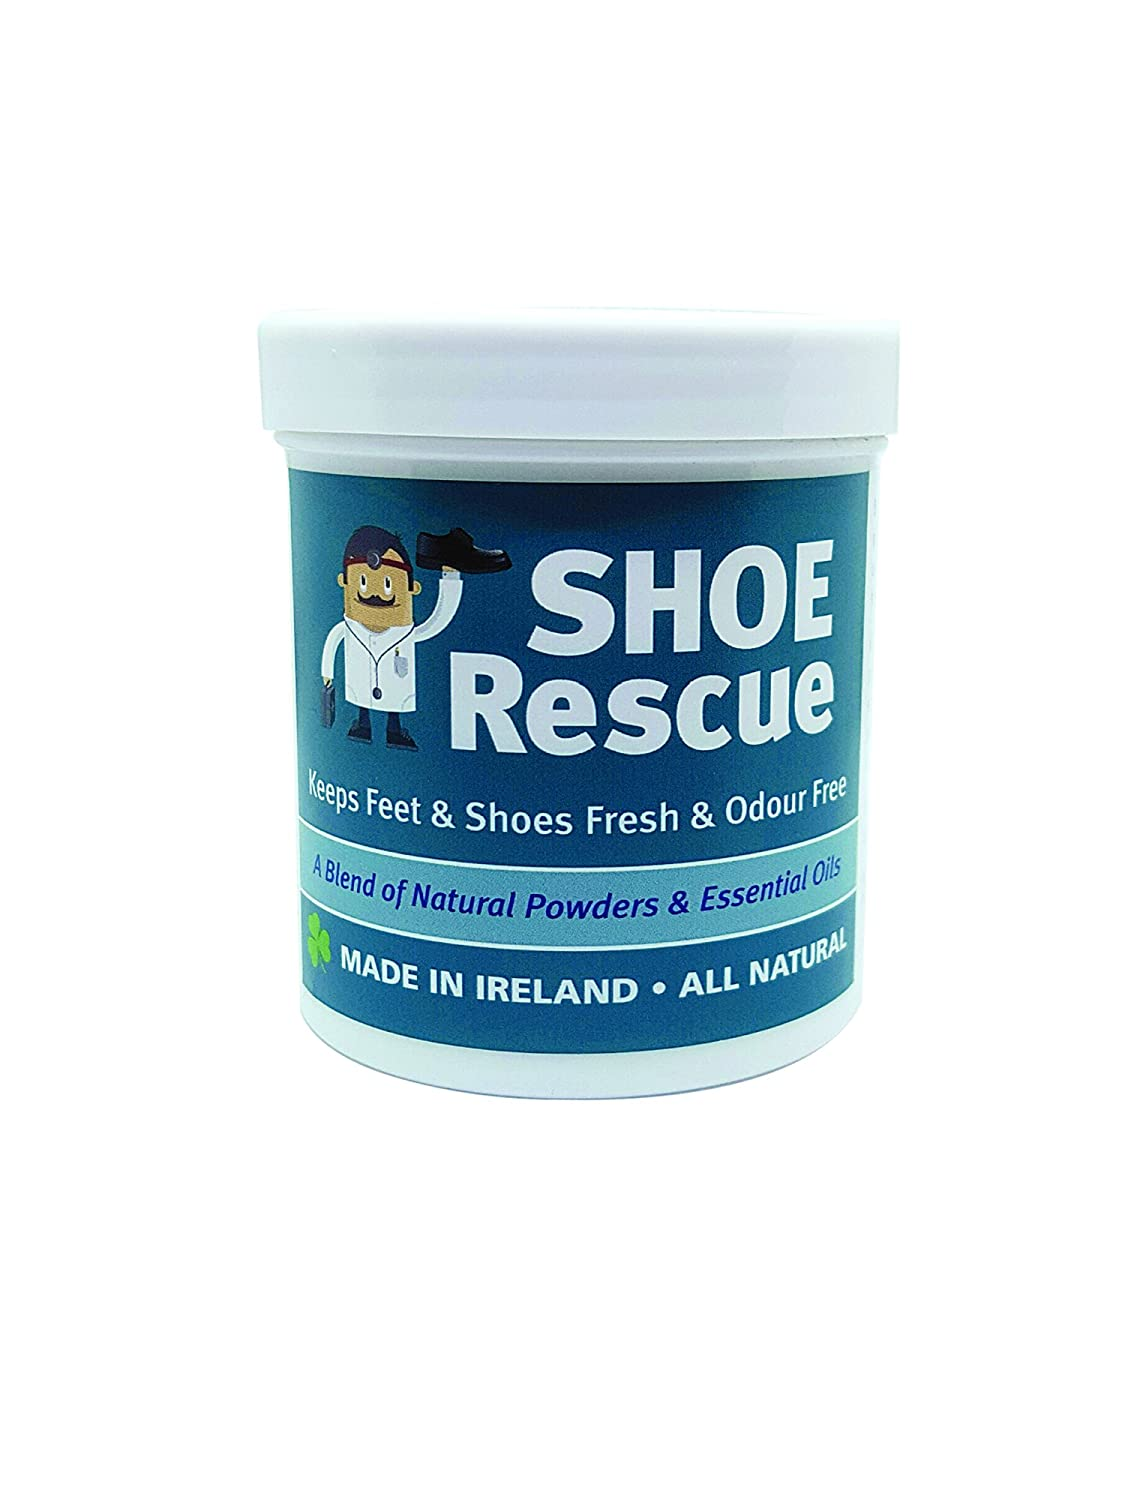 Shoe and foot powder 100g - Foot odour remover and eliminator - Developed by a registered podiatrist Shoe Rescue is a completely natural deodorant remedy to eliminate smelly shoes and feet - Contains beautiful essential oils Tea Tree Lavender and Peppermin